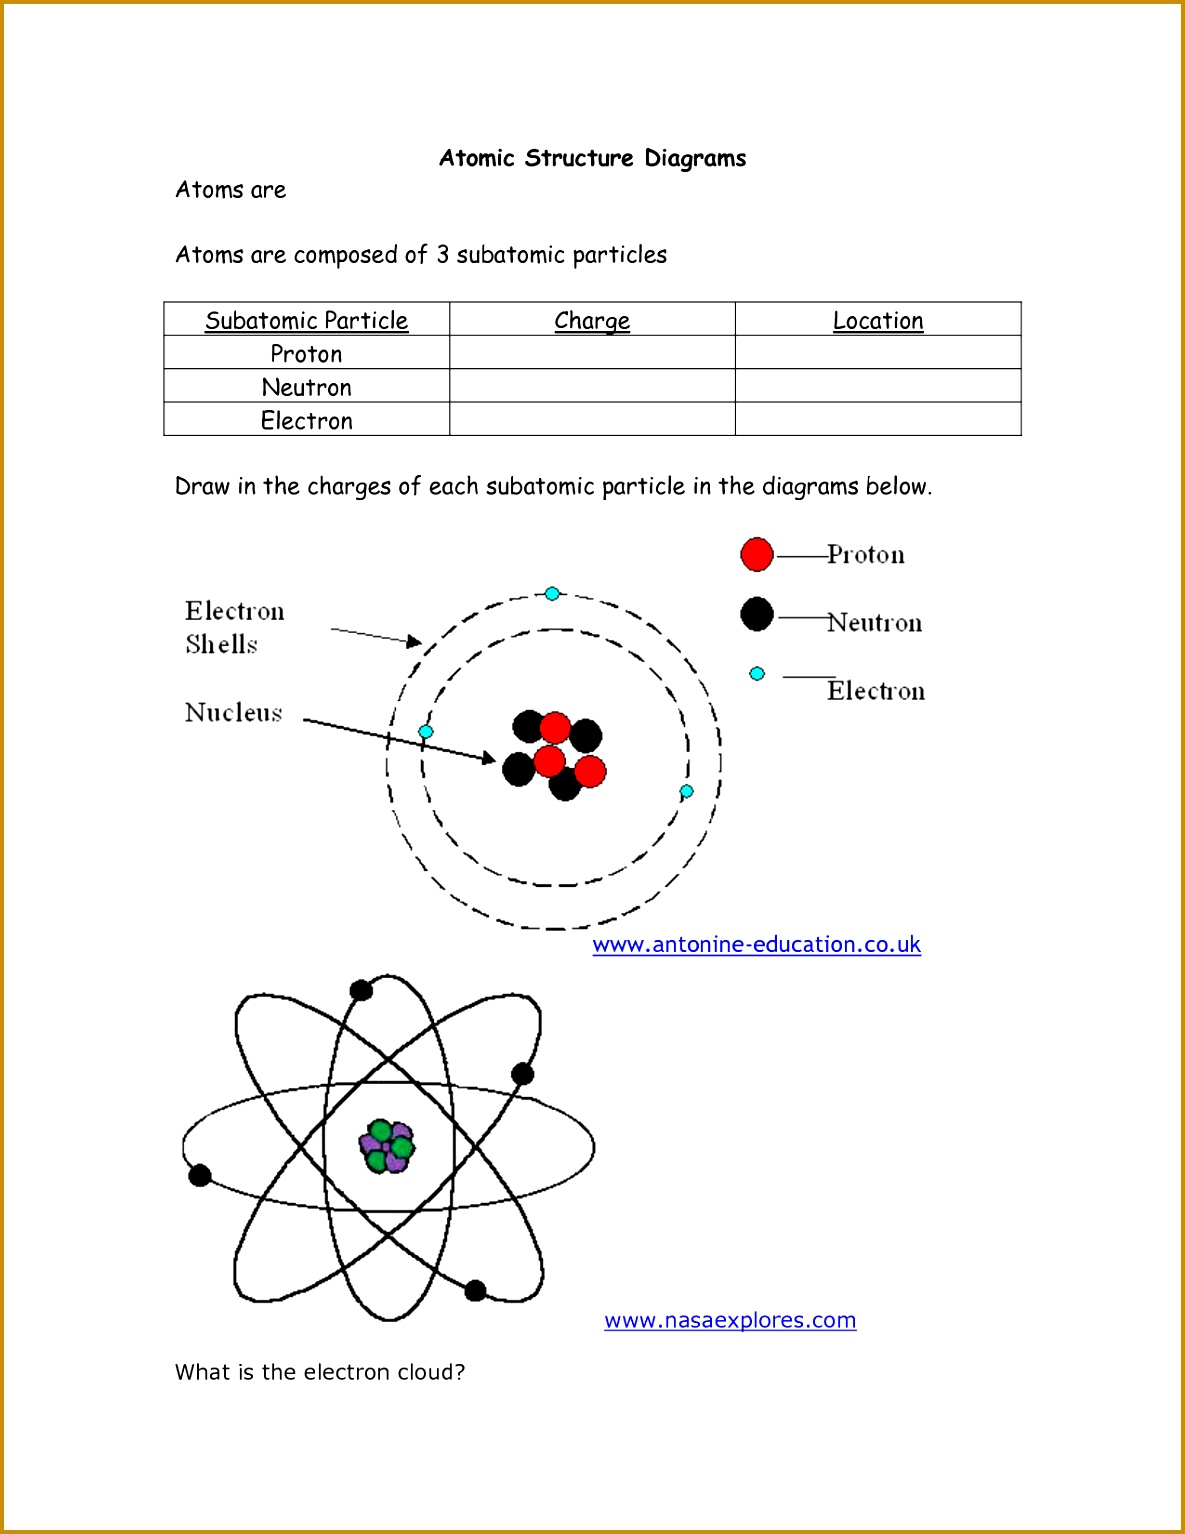 3 Bohr Atomic Model Worksheet